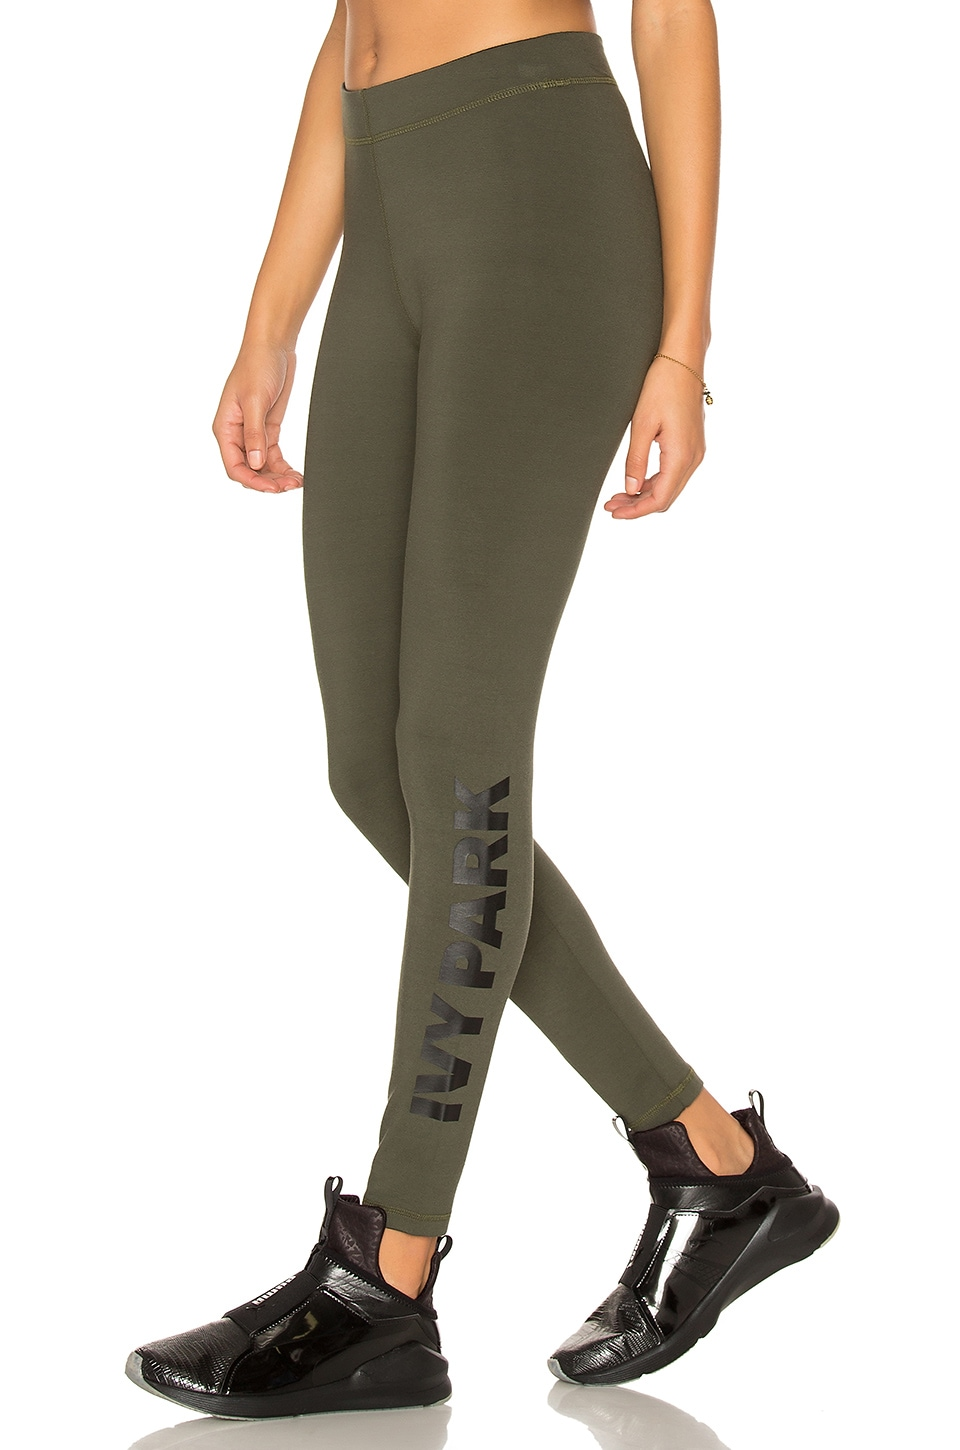 IVY PARK Casual Legging in Khaki & Black Logo